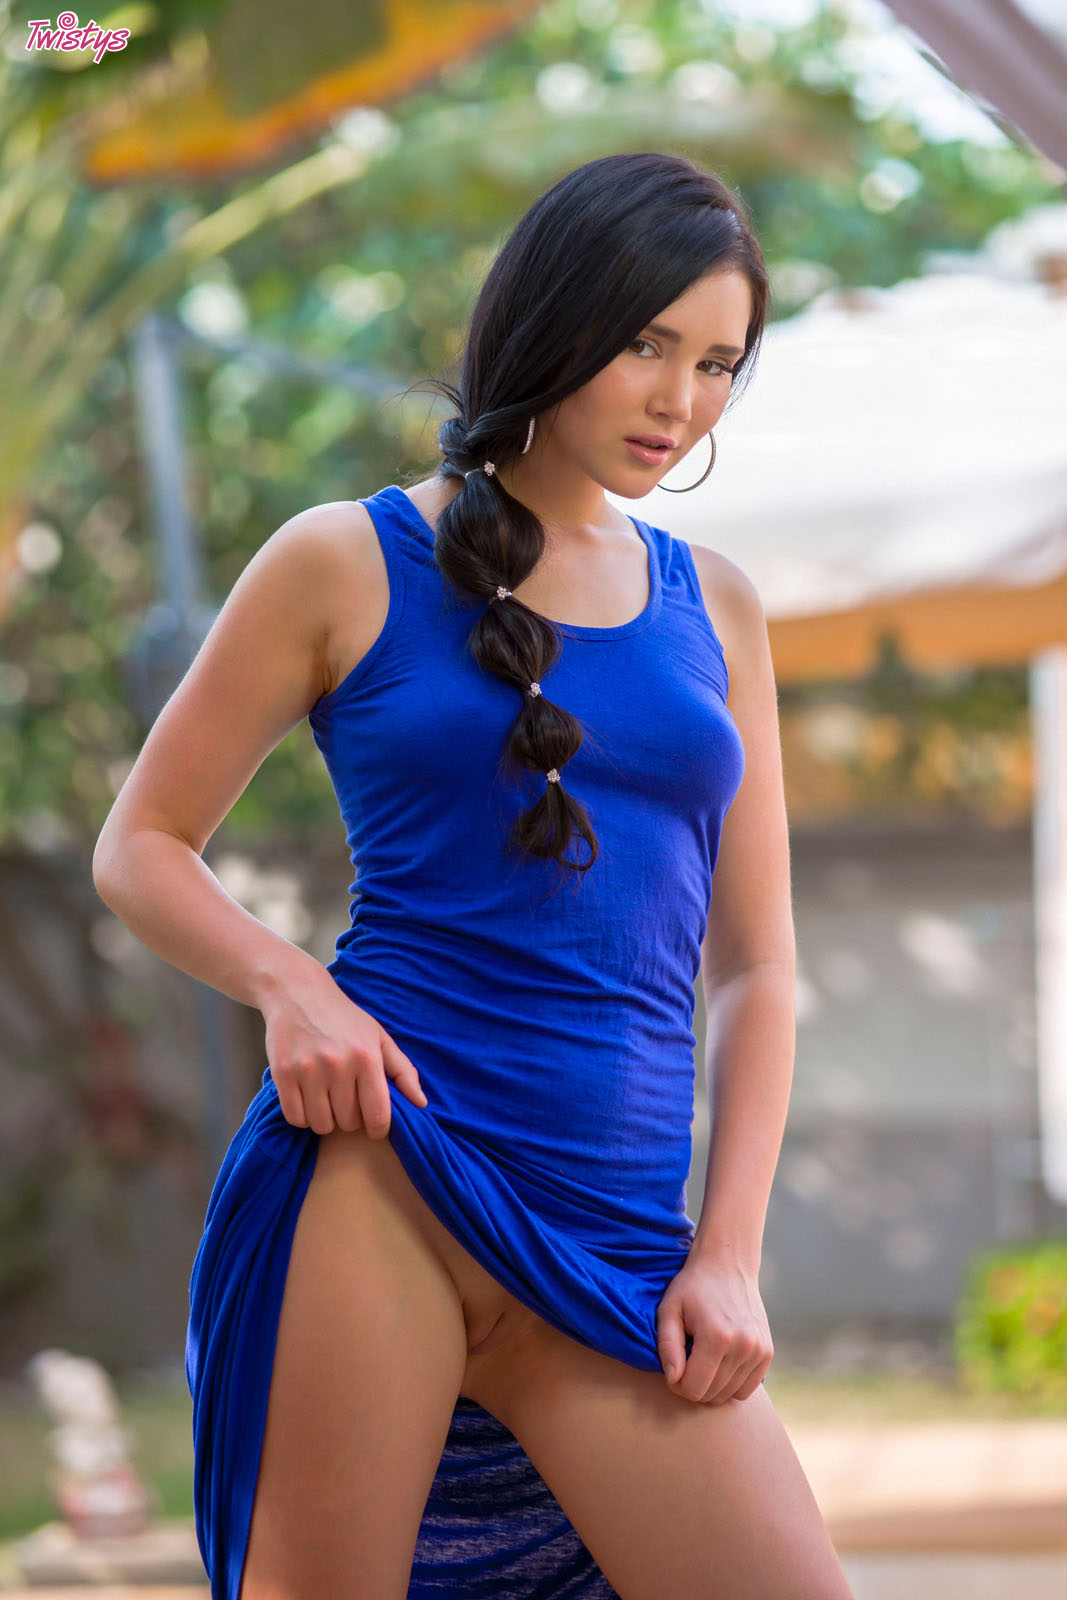 Erotic Model Long Dress 7